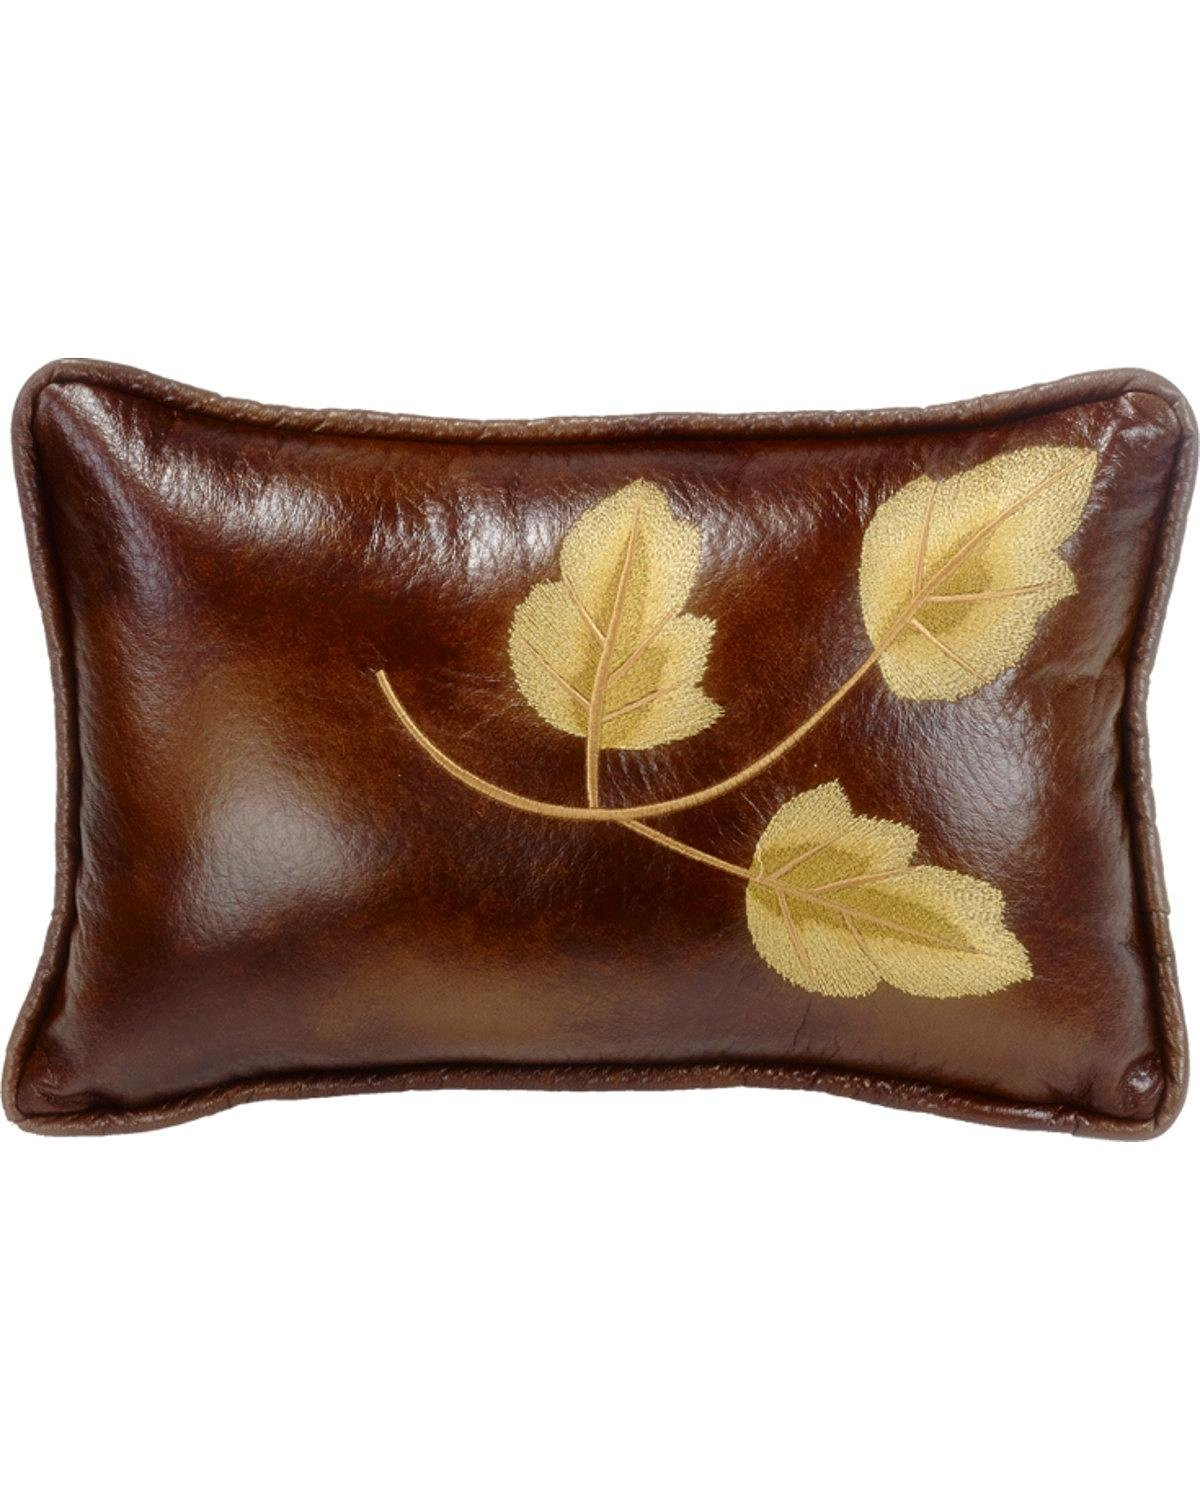 HiEnd Accents LG1860P5 Highland Lodge Embroidery Leaf Pillow, 12x19